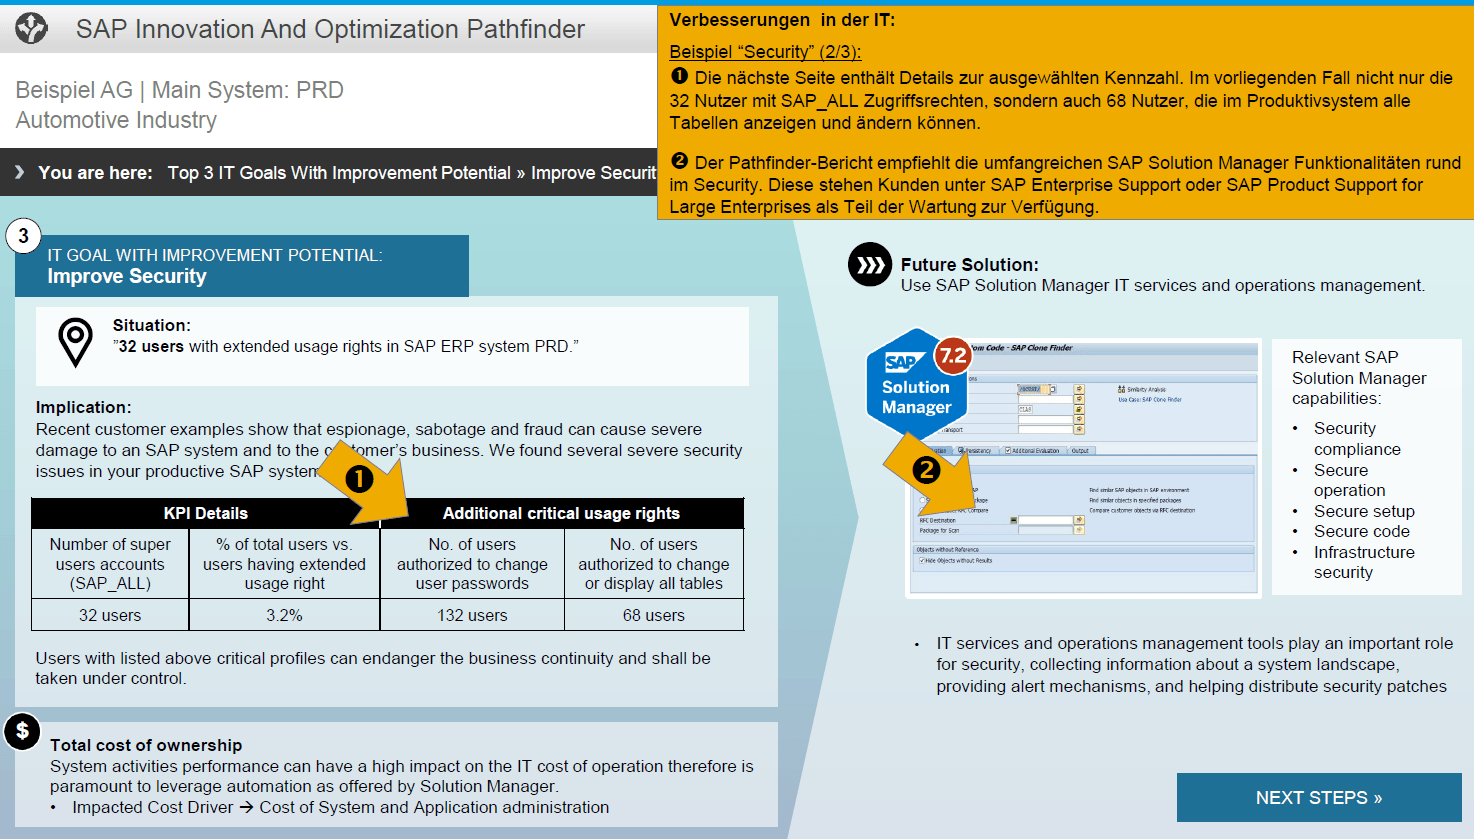 Blog_Screen_SAP Pathfinder_IT-Security 2